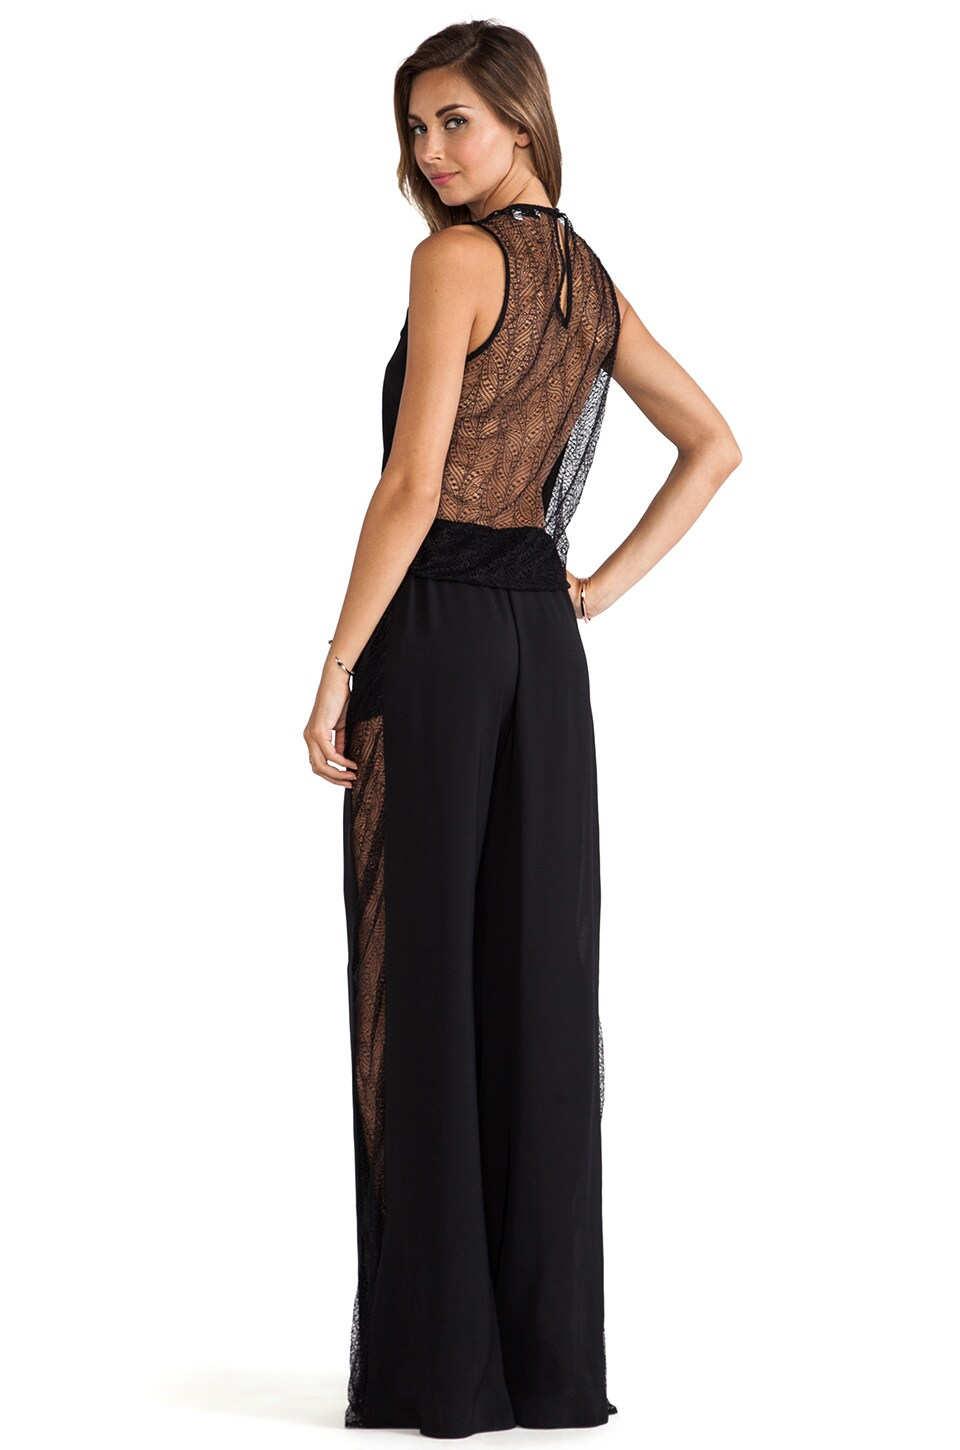 Alexis Kenzia Lace Jumpsuit in Black